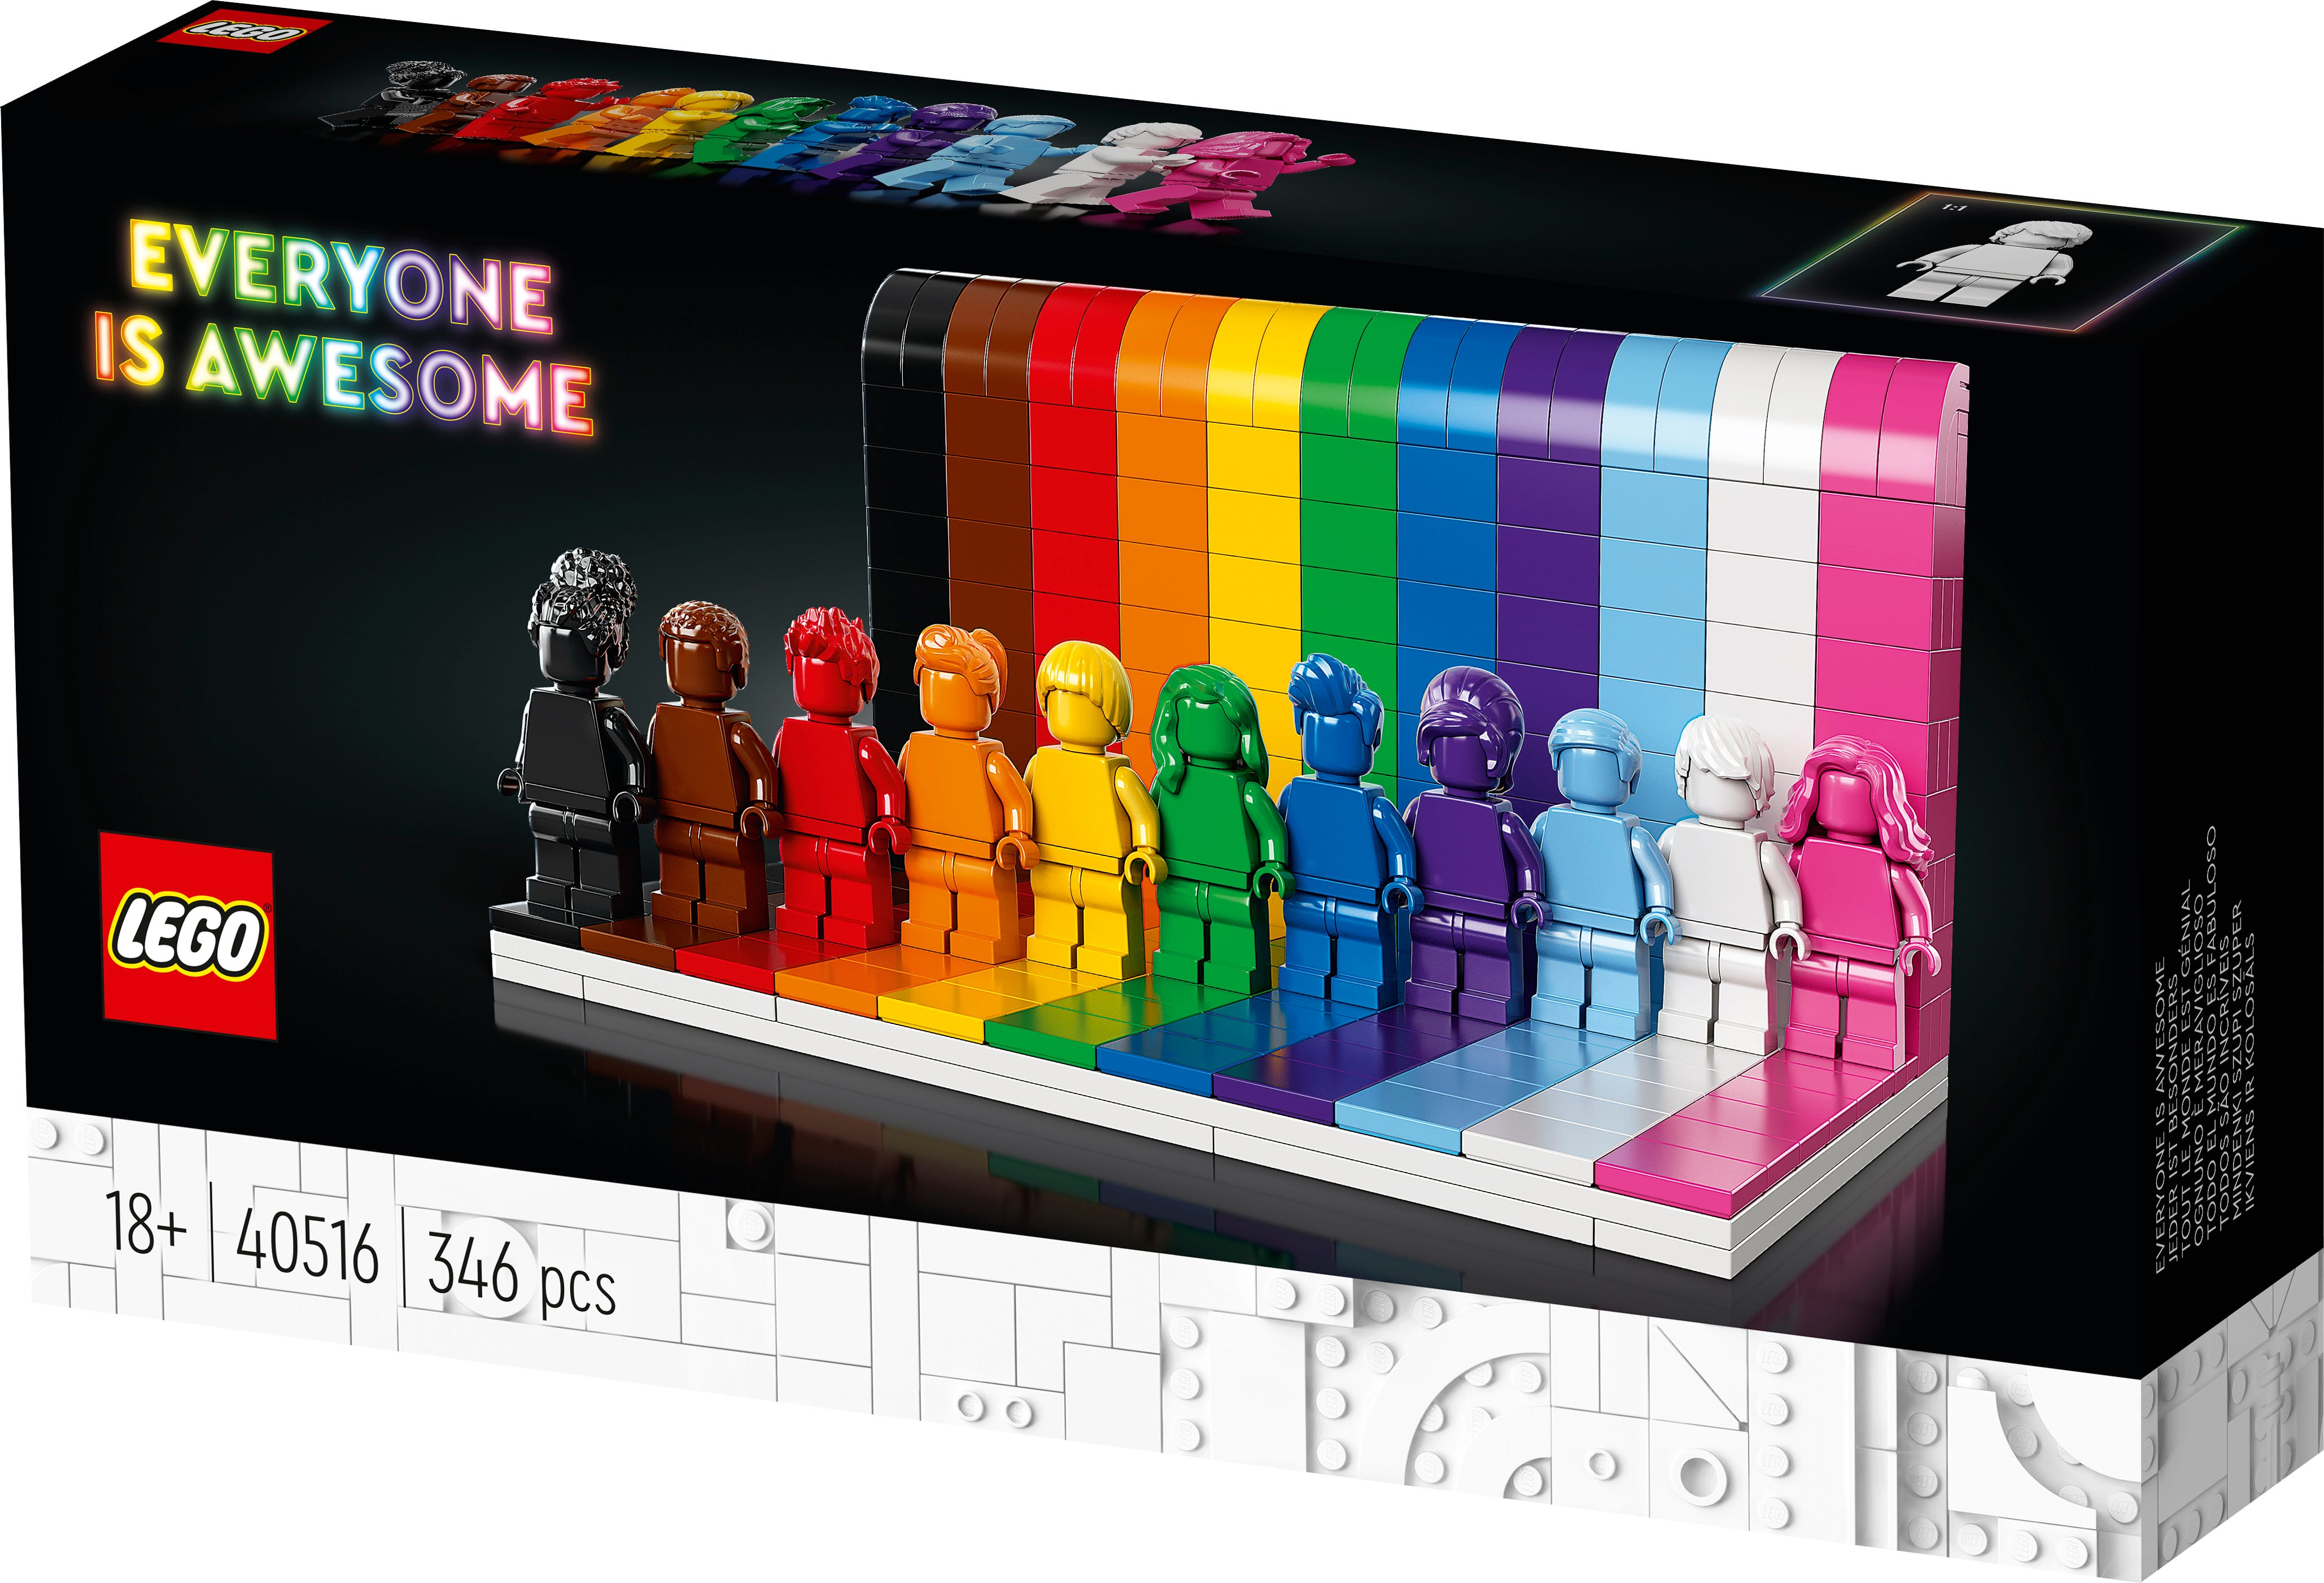 Lego announces LGBTQ set ahead of Pride Month: 'Everyone is Awesome'